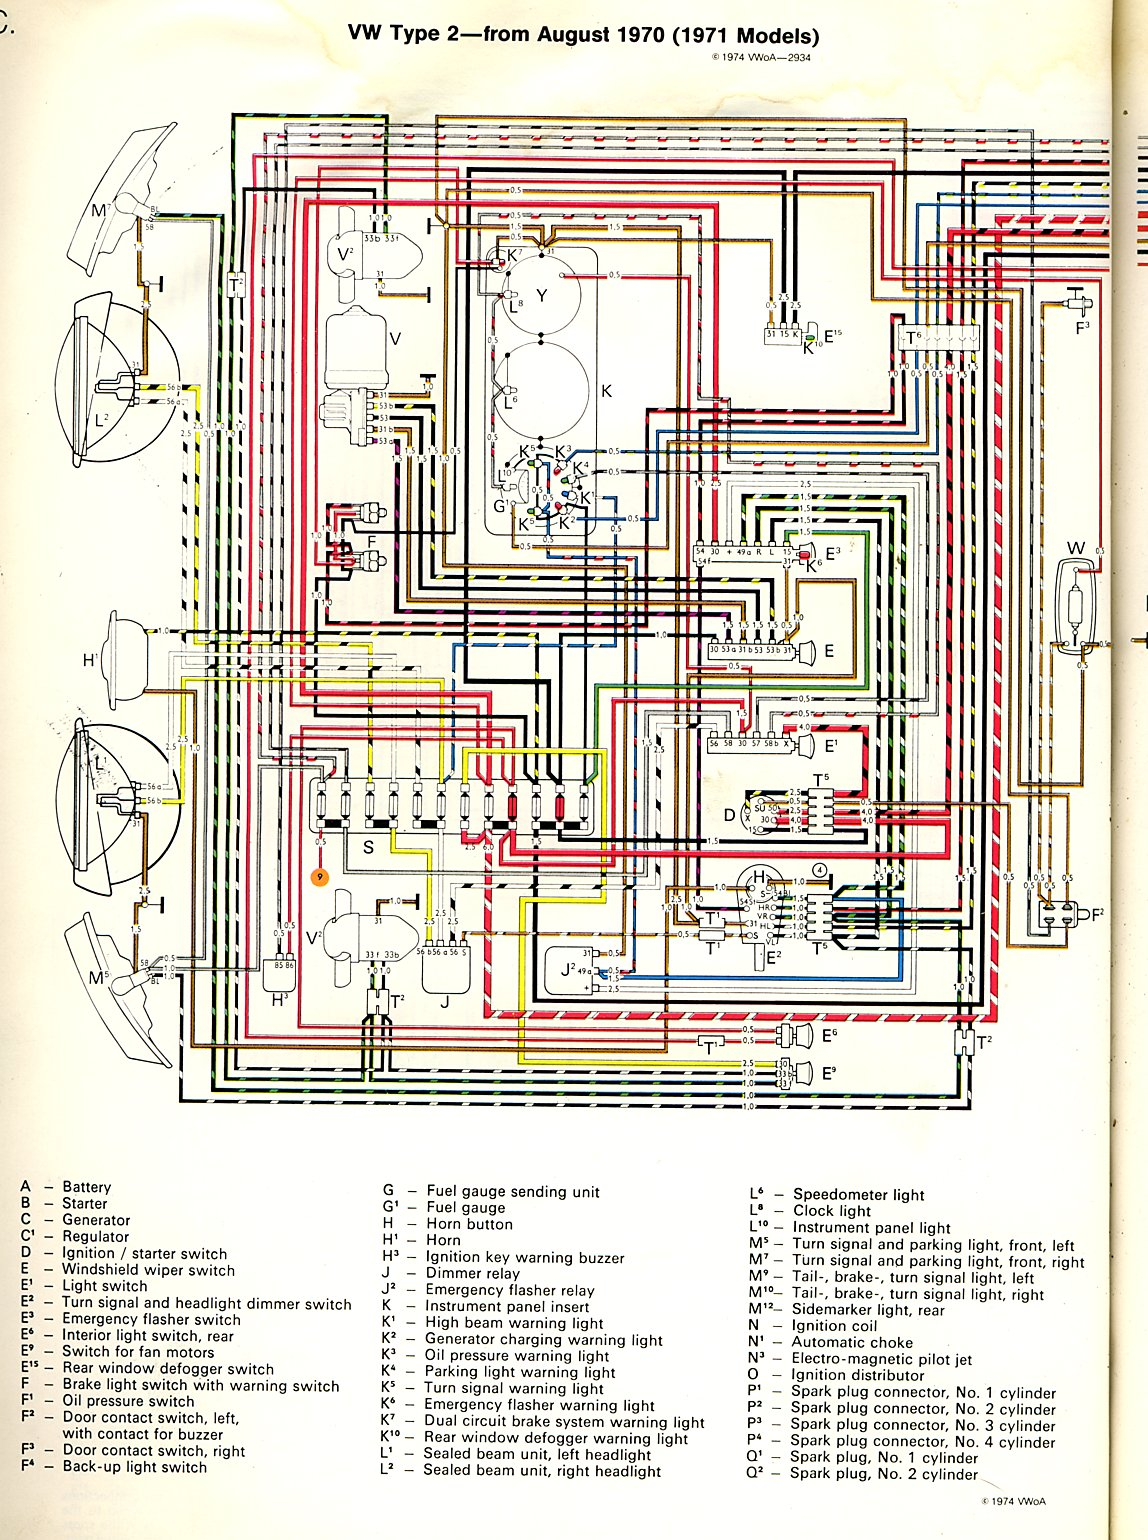 wiring diagram 69 volkswagen bug 1971 bus wiring diagram thegoldenbug com wiring diagram 69 bsa a65